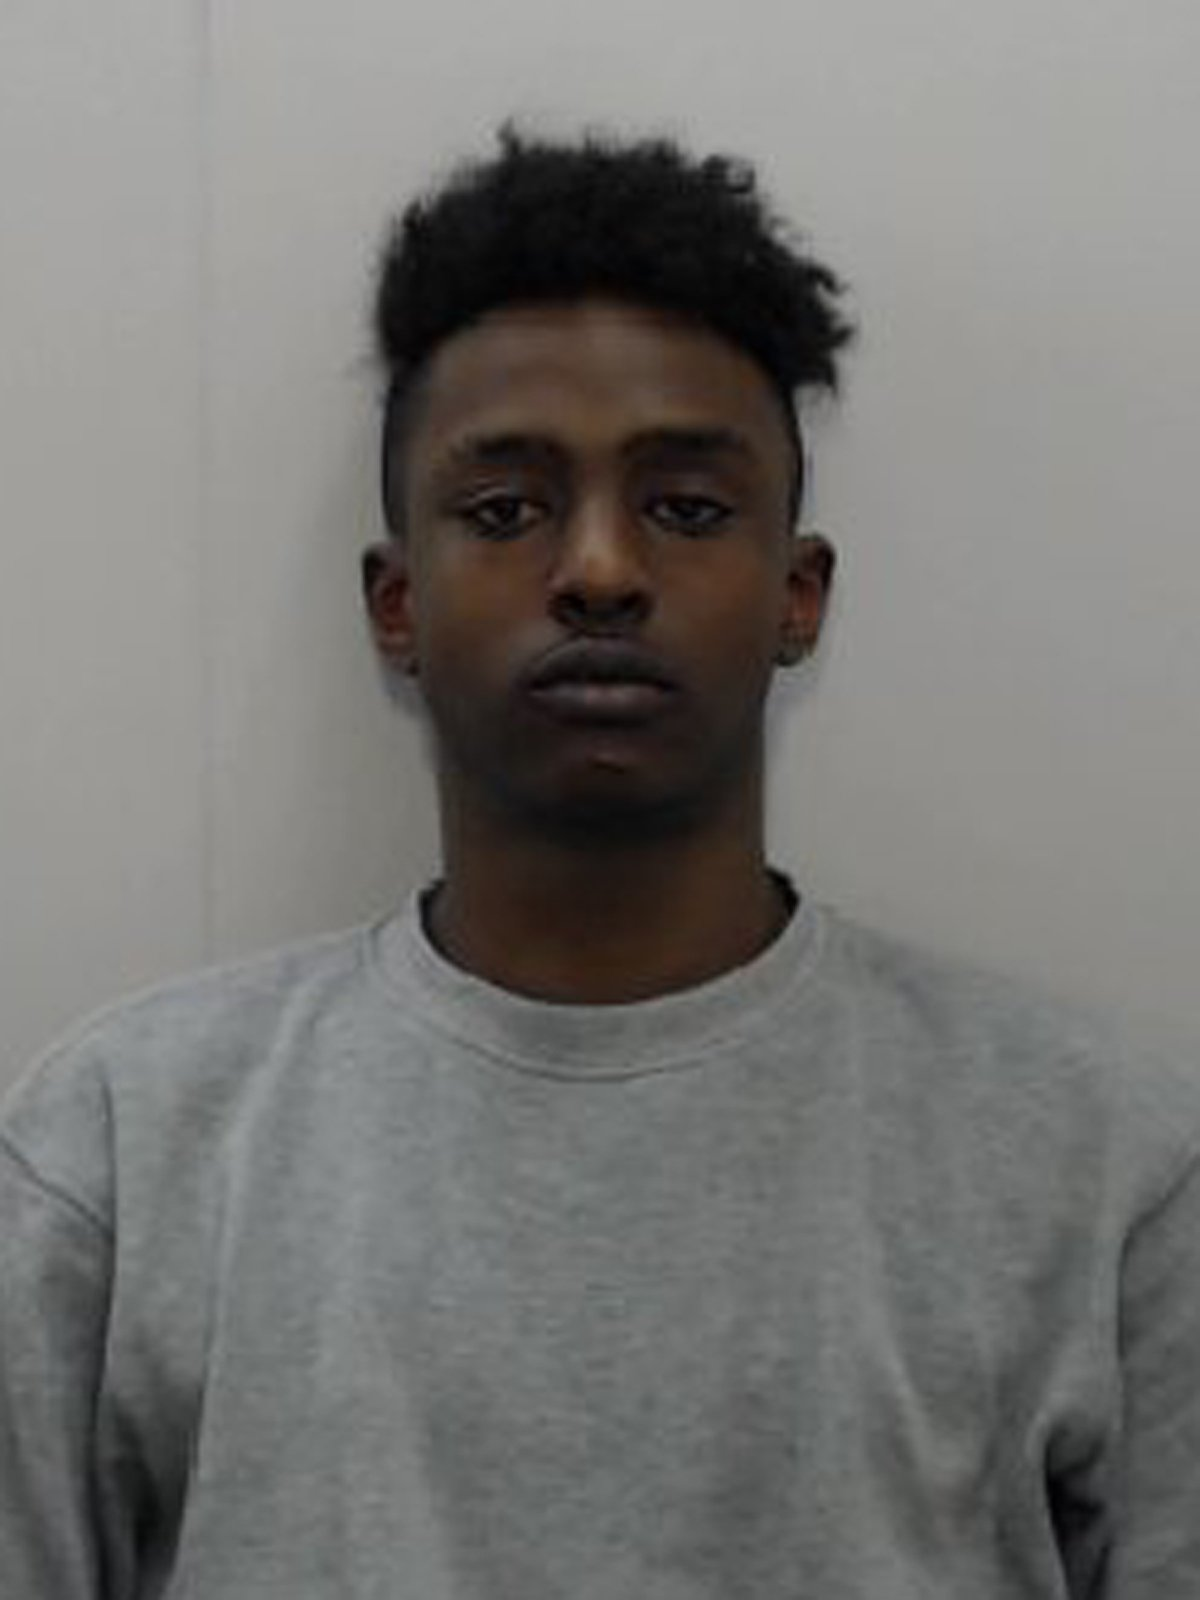 A young man has been found guilty of murder for stabbing to death a newlywed he thought had mugged his brother. Vengeful Mohamed Jama, 20, ran off laughing after knifing his victim, a 'popular and polite' bakery worker who had just left Friday prayers at his mosque in Oldham, Manchester. Mohammed Nabeel Hassan, 22, was left to die on a grass verge as Mohamed Jama fled following the violent 15-second confrontation. On their fifth day of deliberations, today (Wednesday) a jury unanimously found Jama guilty of murder following a four-week trial at Manchester Crown Court. CAPTION: Mohamed Jama